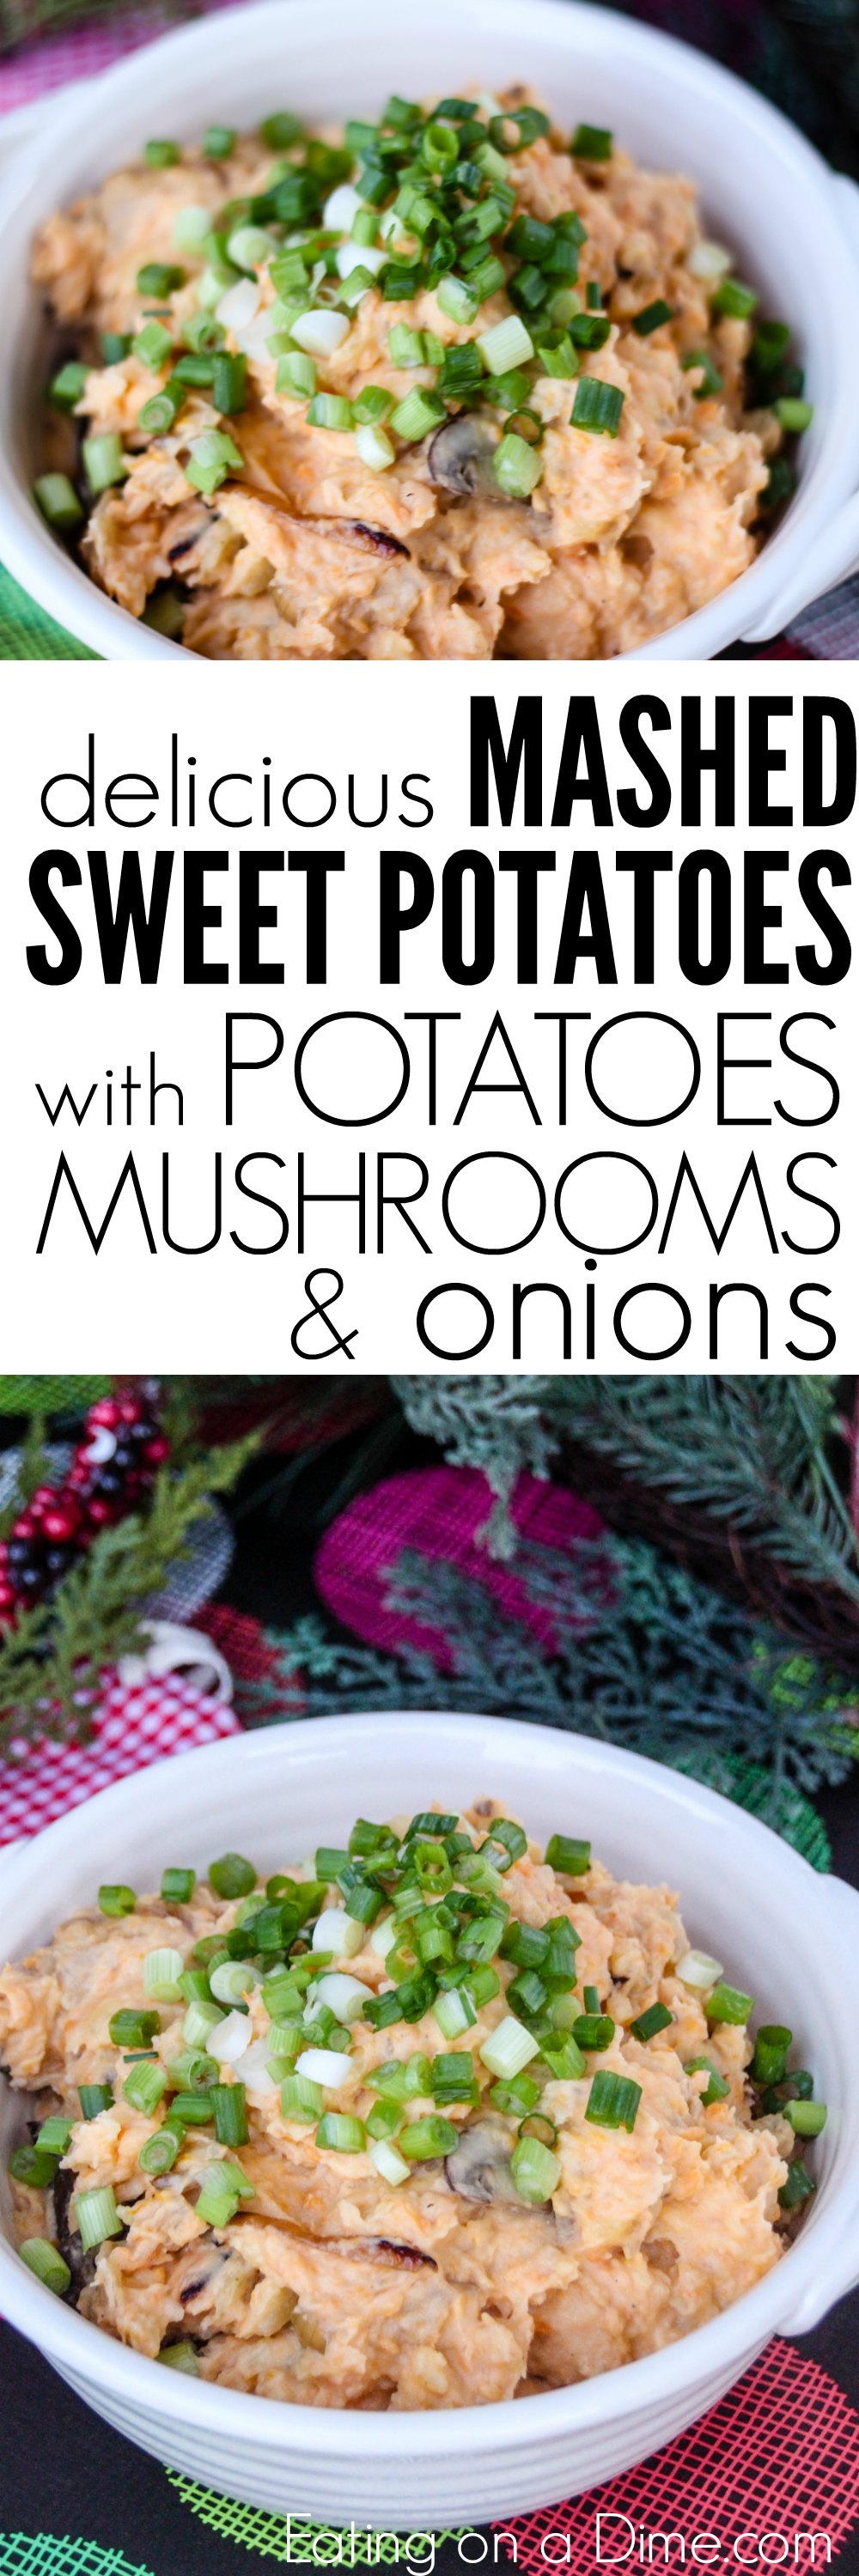 Needing an easy side dish recipe? Try this mashed sweet potatoes recipe! Making mashed sweet potatoes with mushrooms, onions, and more is delicious!